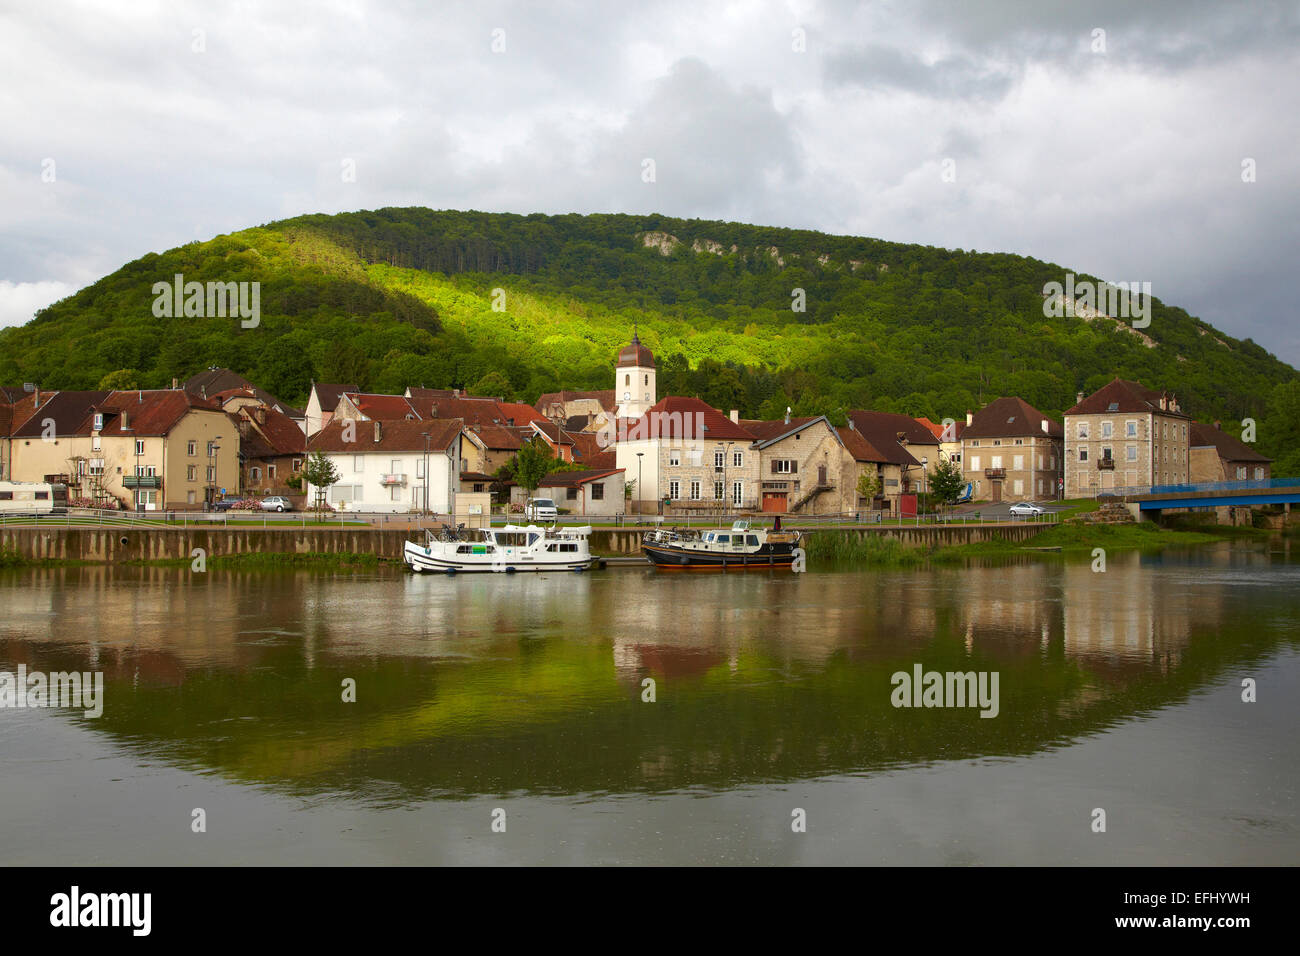 Houseboat in the Doubs-Rhine-Rhone-channel at Clerval, PK 127, Doubs, Region Franche-Comte, France, Europe Stock Photo